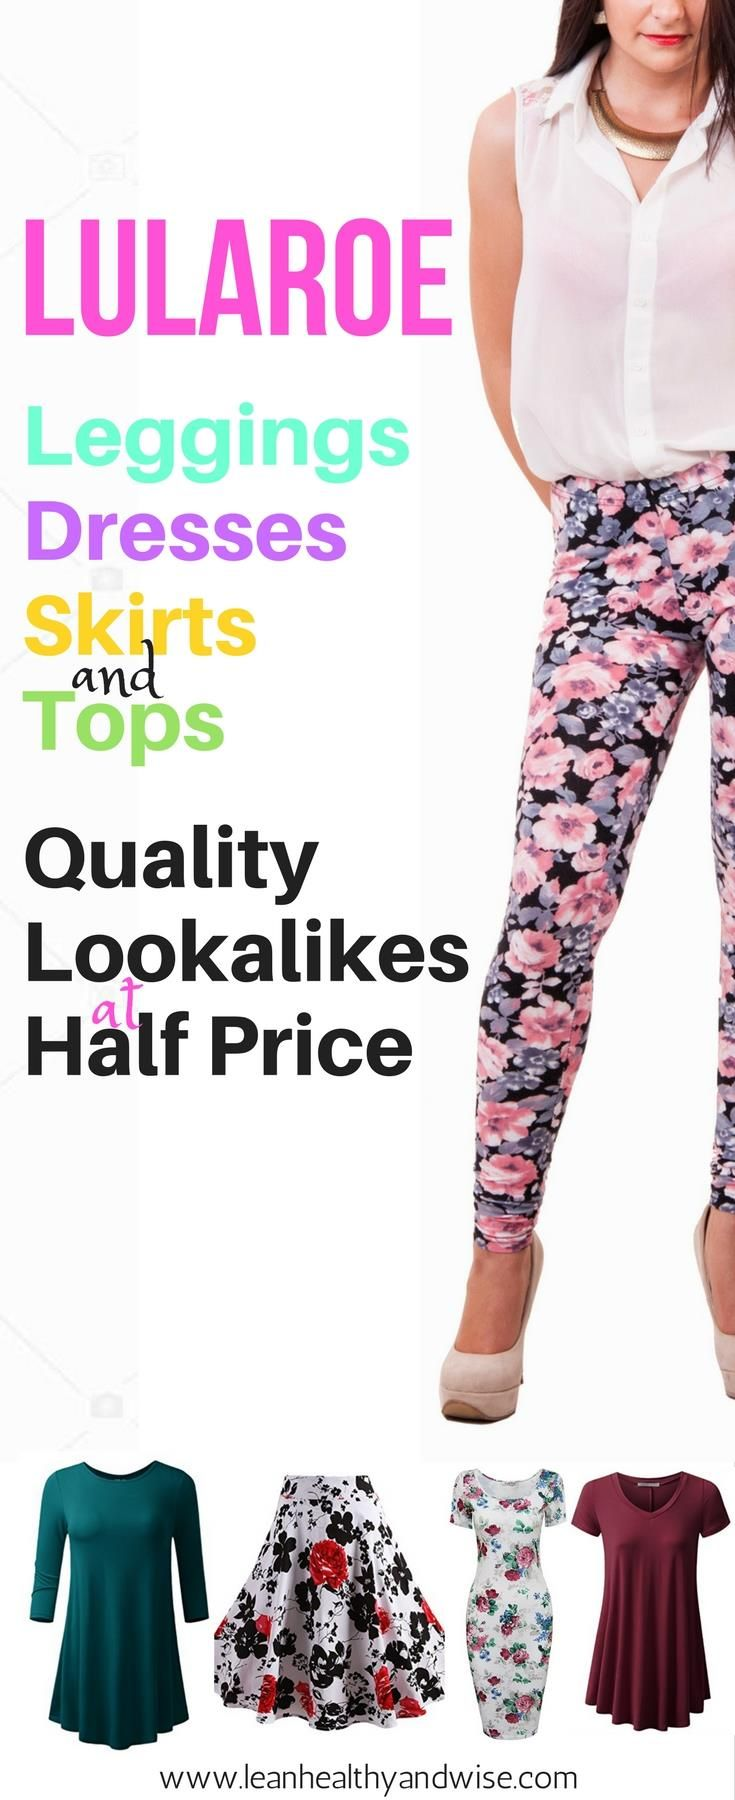 LuLaRoe clothing is lovely but expensive. Find out where you can buy top quality LuLaRoe alternatives - leggings, dresses, skirts and tunics at half price or less. via @leanhealthywise